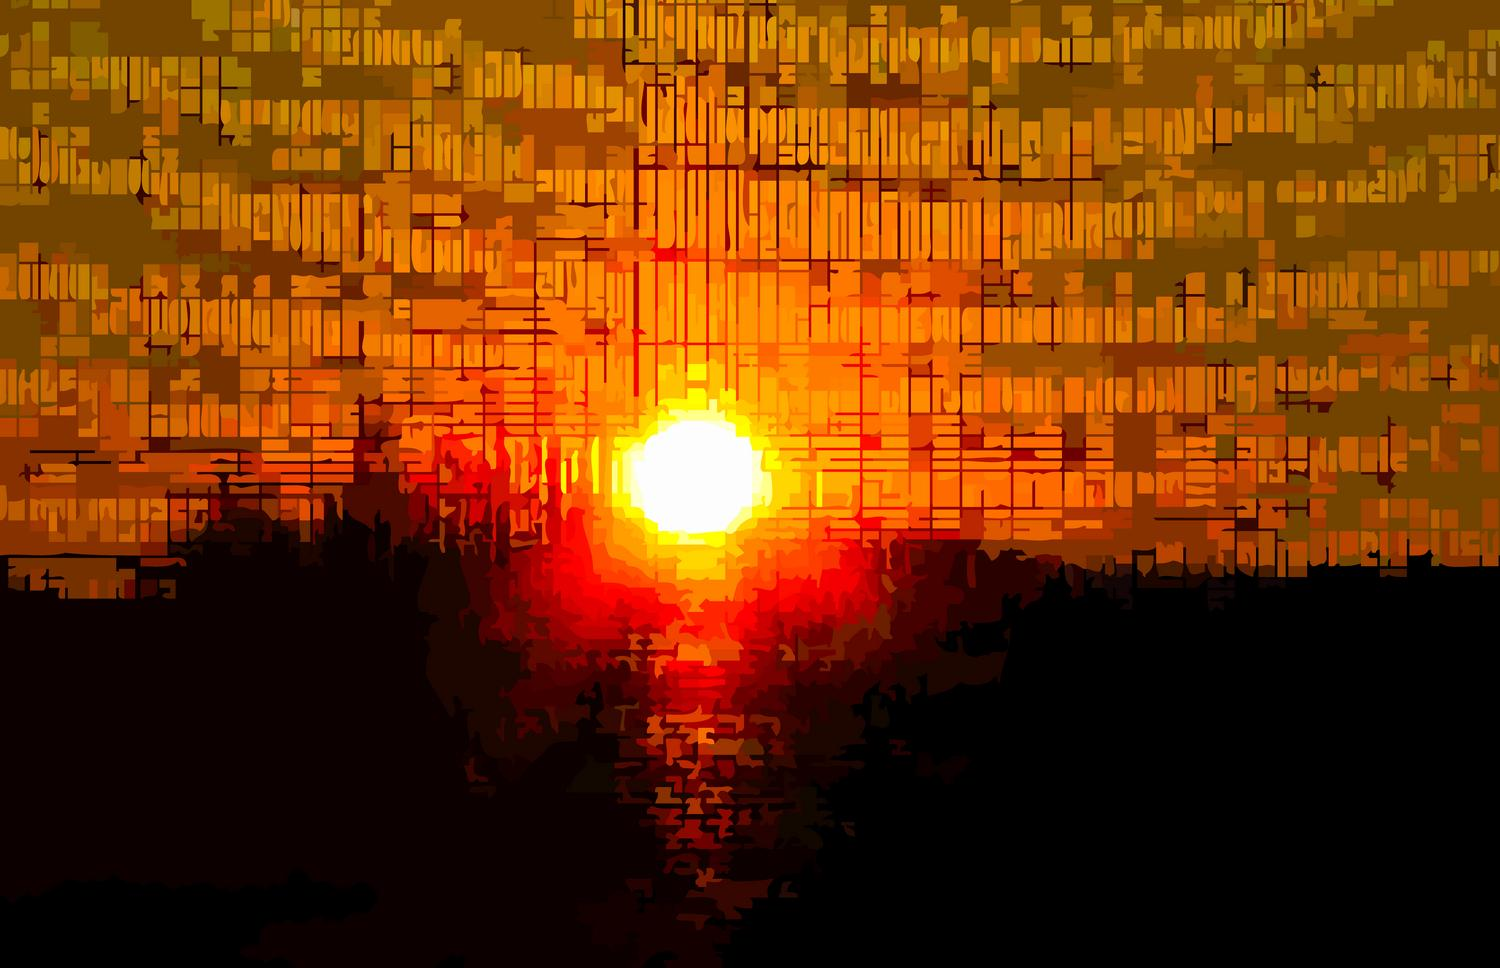 the sun coming through a screen - Sunset with rhythmic beats and waves - Panasonic DMC-FZ28 - Tony Karp, design, art, photography, techno-impressionist, techno-impressionism, aerial photography , drone , drones , dji , mavic pro , video , 3D printing - Books -